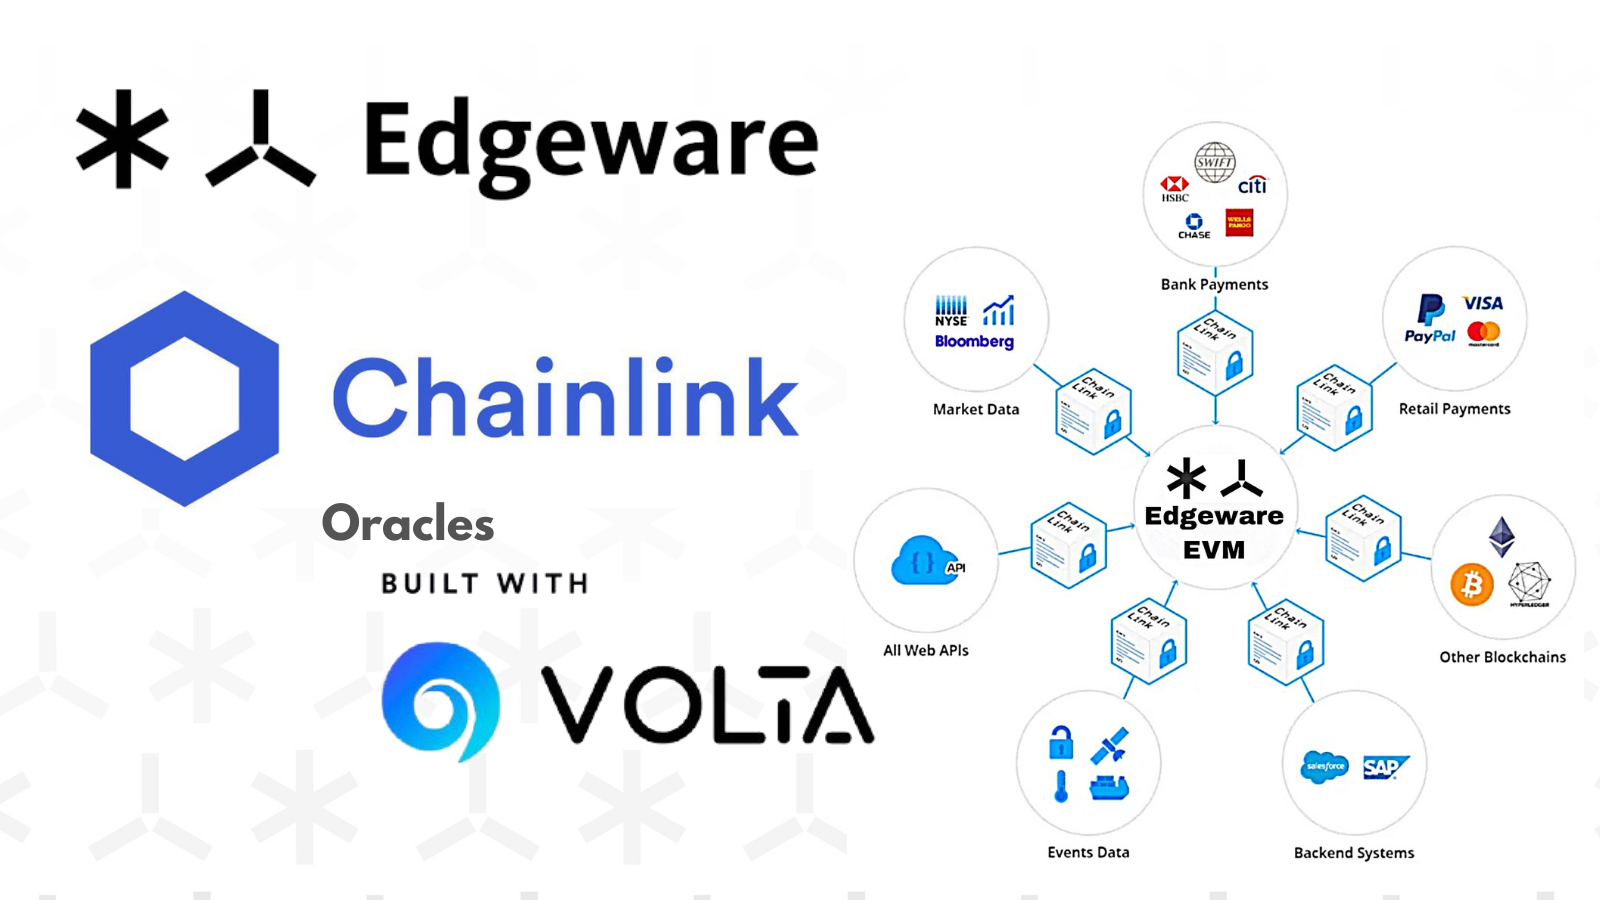 Chainlink oracles on Edgeware powered by Volta